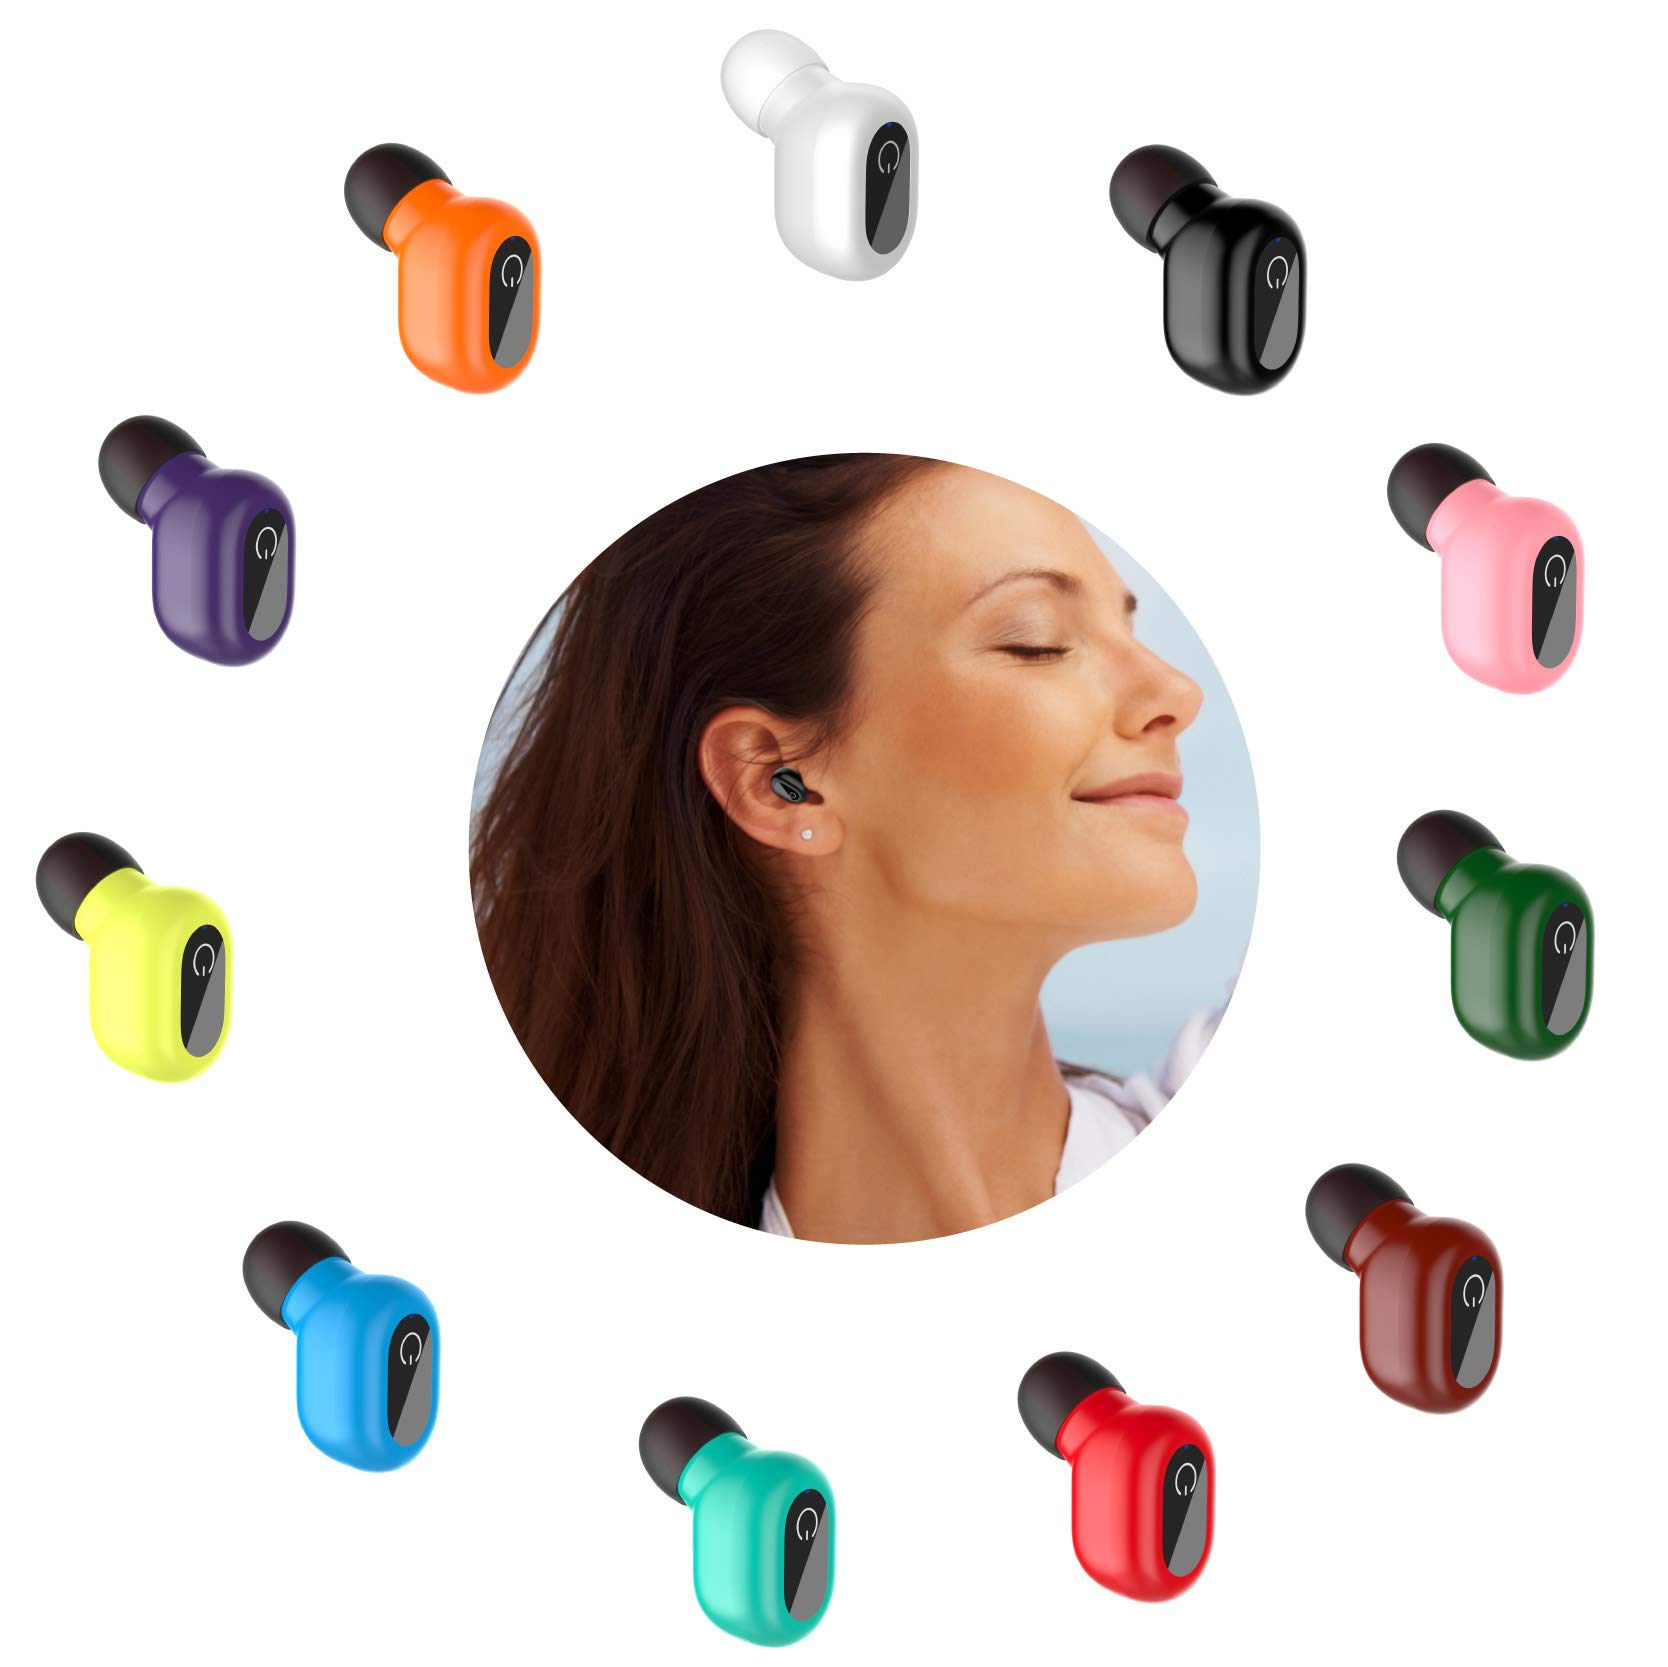 Single Waterproof Bluetooth Earbud - Smallest Wireless Earbud Earpiece Headset Headphone Earphone Car Headset with HD Microphone for iPhone Android and More(One Pcs)-Black by Red2Fire (Image #7)